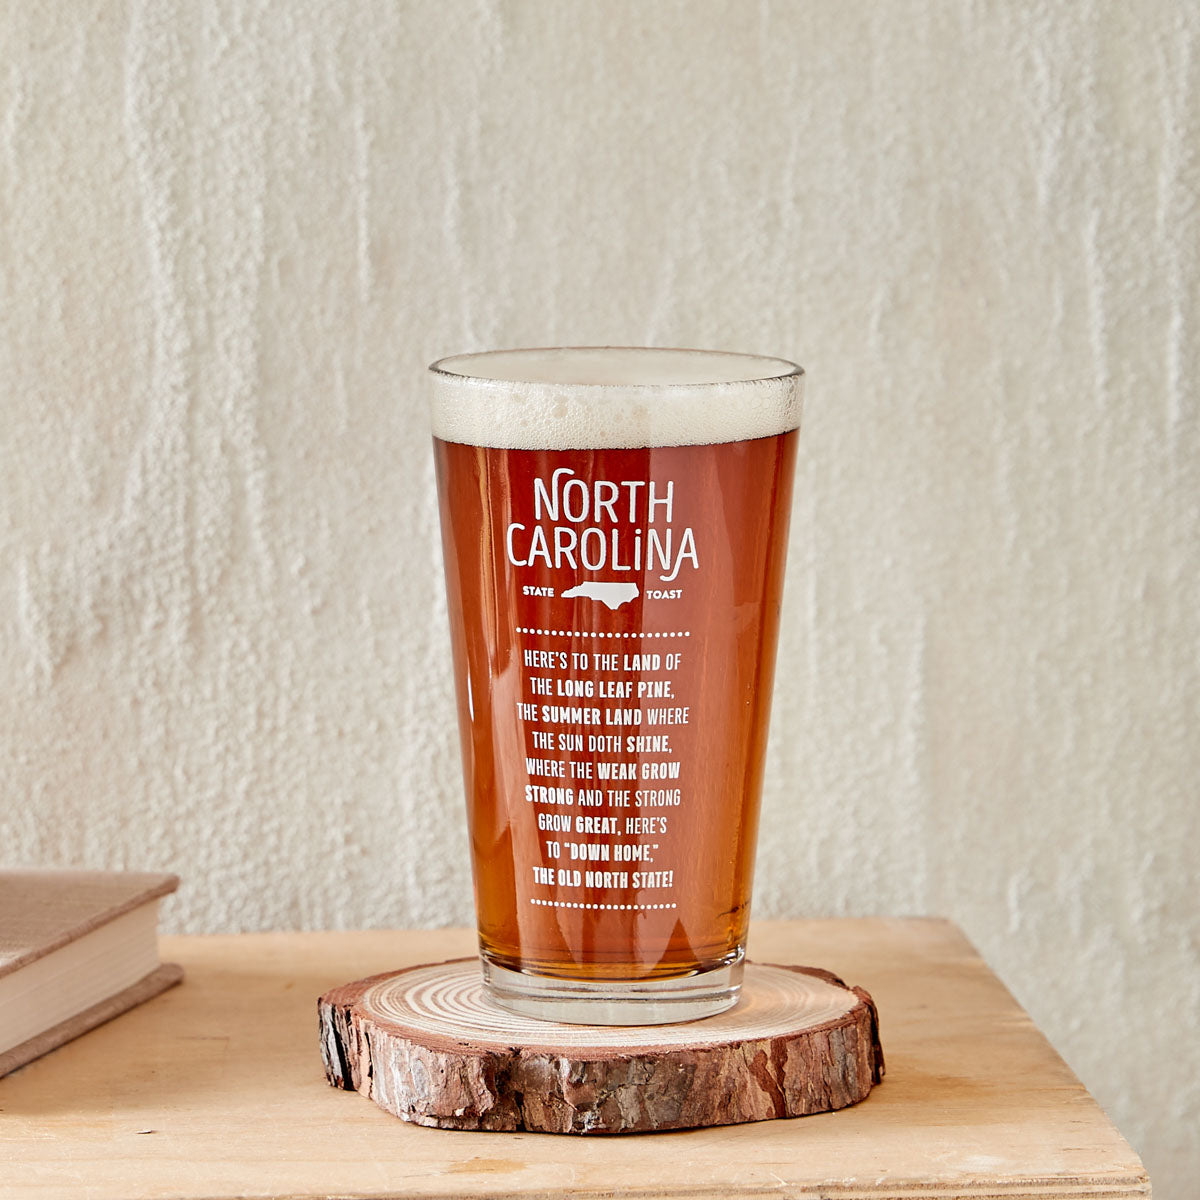 North Carolina State Toast Pint Glass